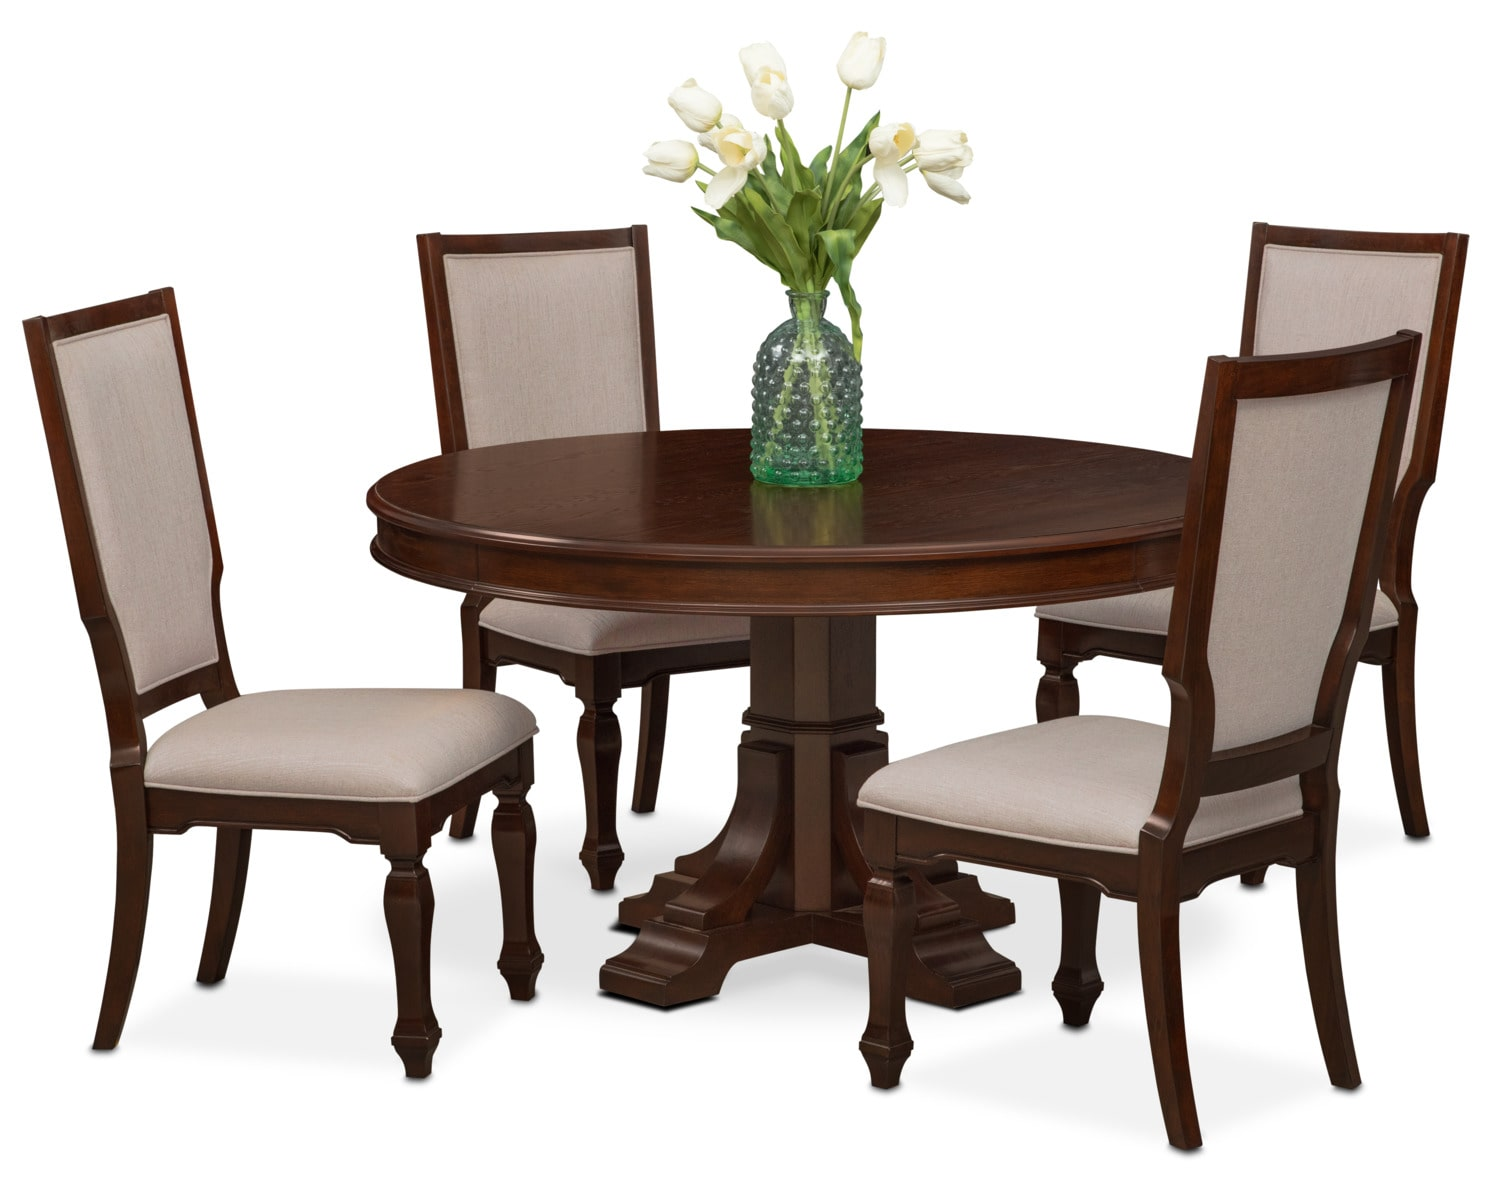 Dining Room Furniture - Vienna Round Dining Table and 4 Upholstered Dining Chairs